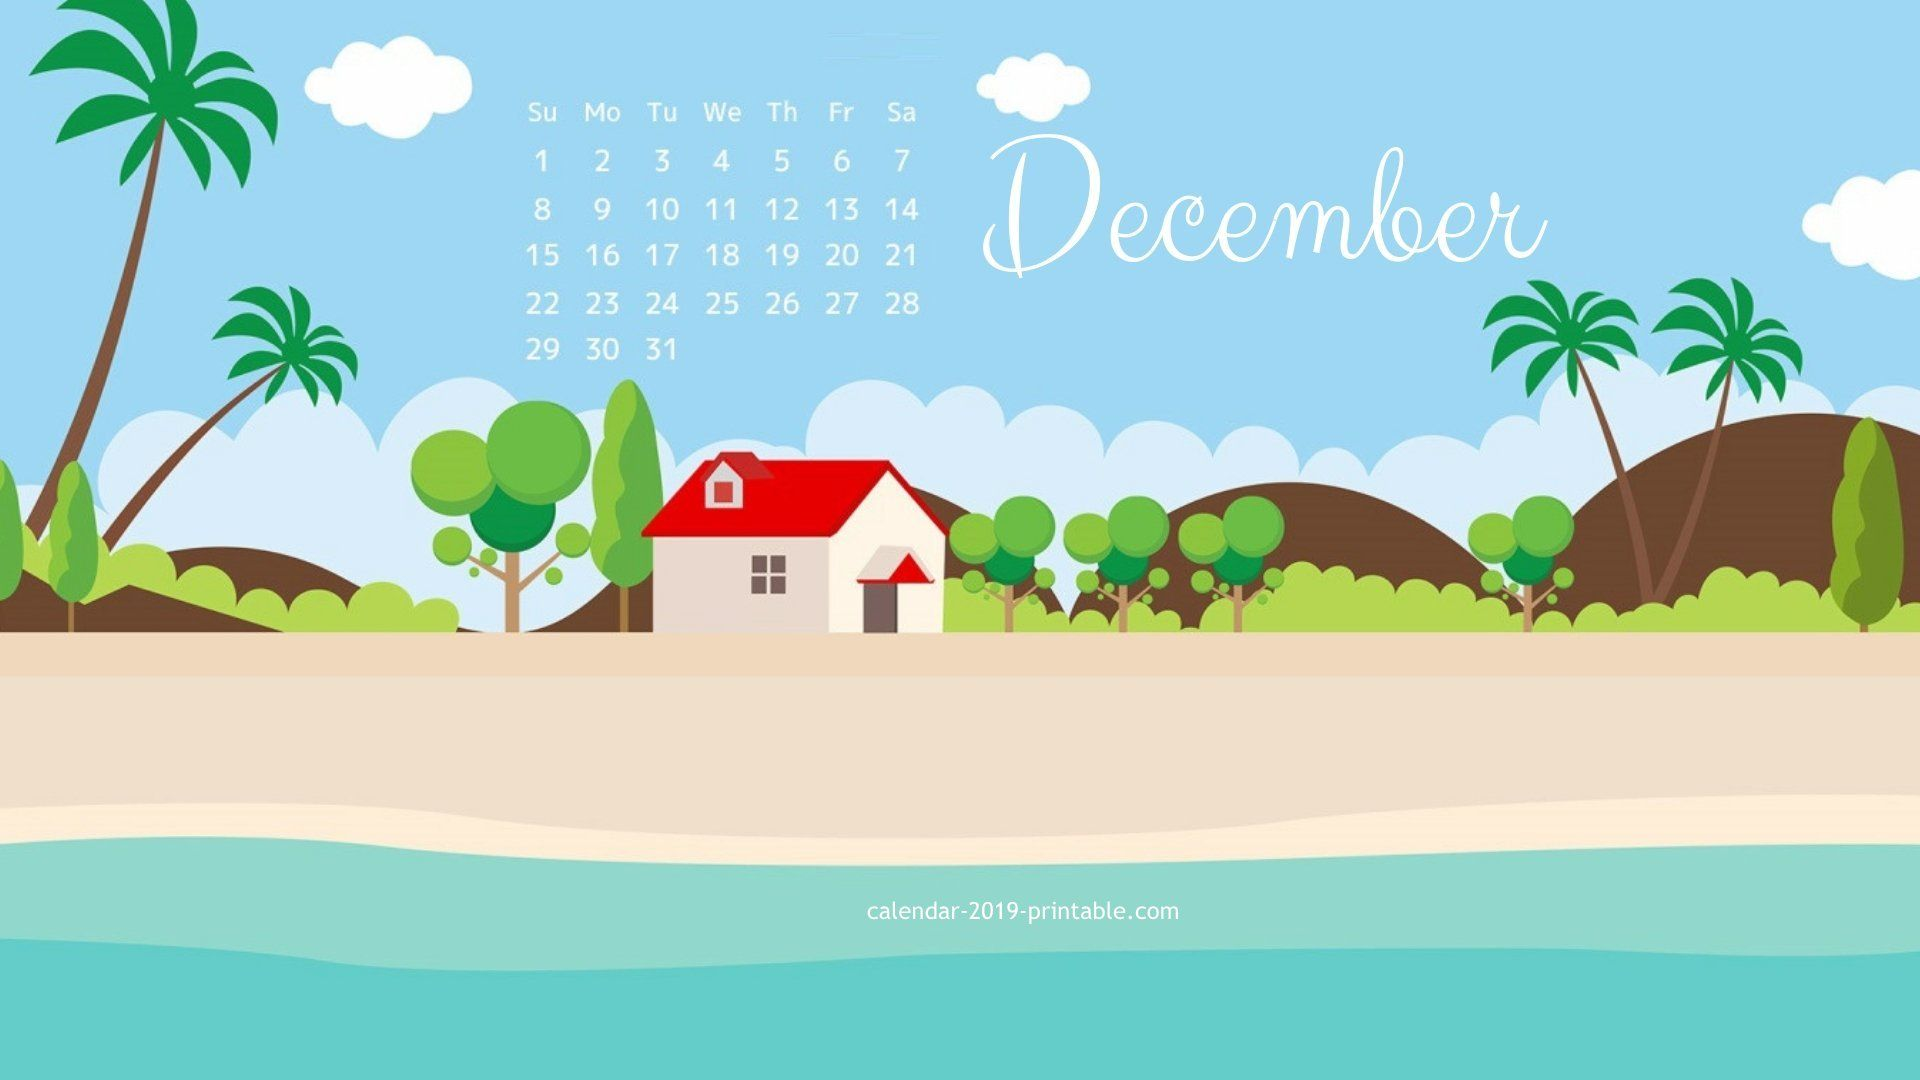 December 2019 Calendar Wallpaper Desktop december 2019 hd calendar wallpaper | 2019 Calendars | December